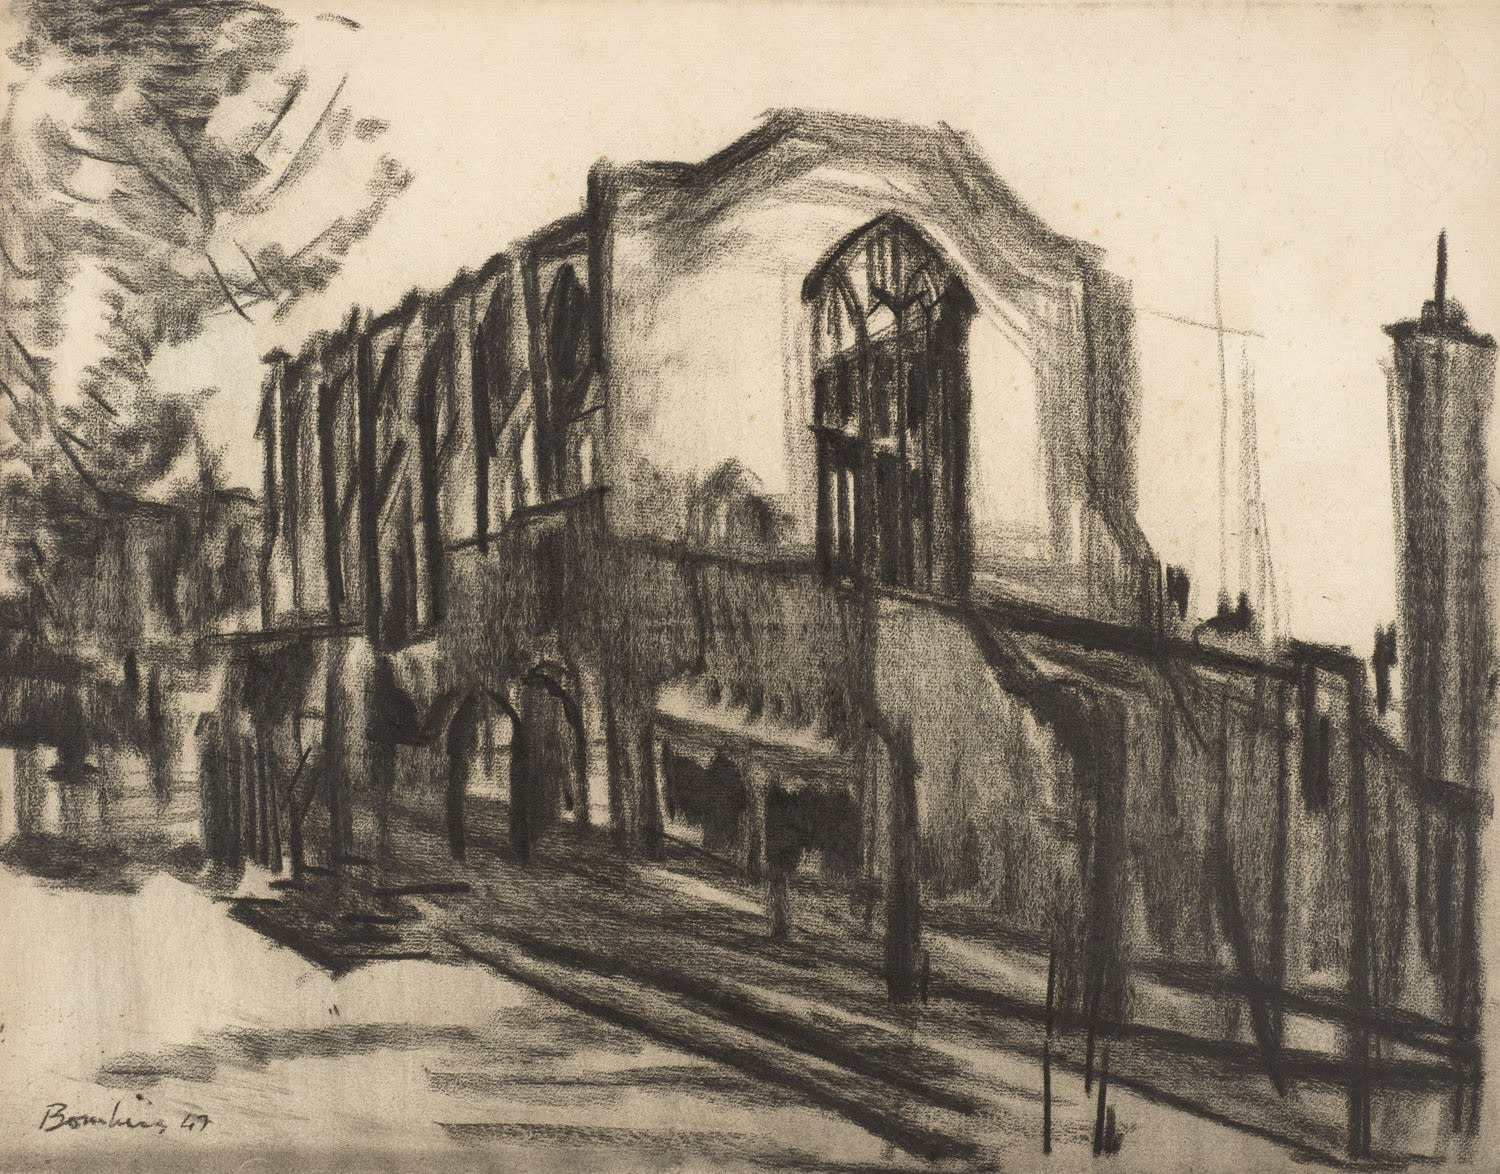 David Bomberg Benchers Hall, Inner Temple,1947 Charcoal on paper 47 x 60cm. Ben Uri Collection Presented from a Private Collection 2015